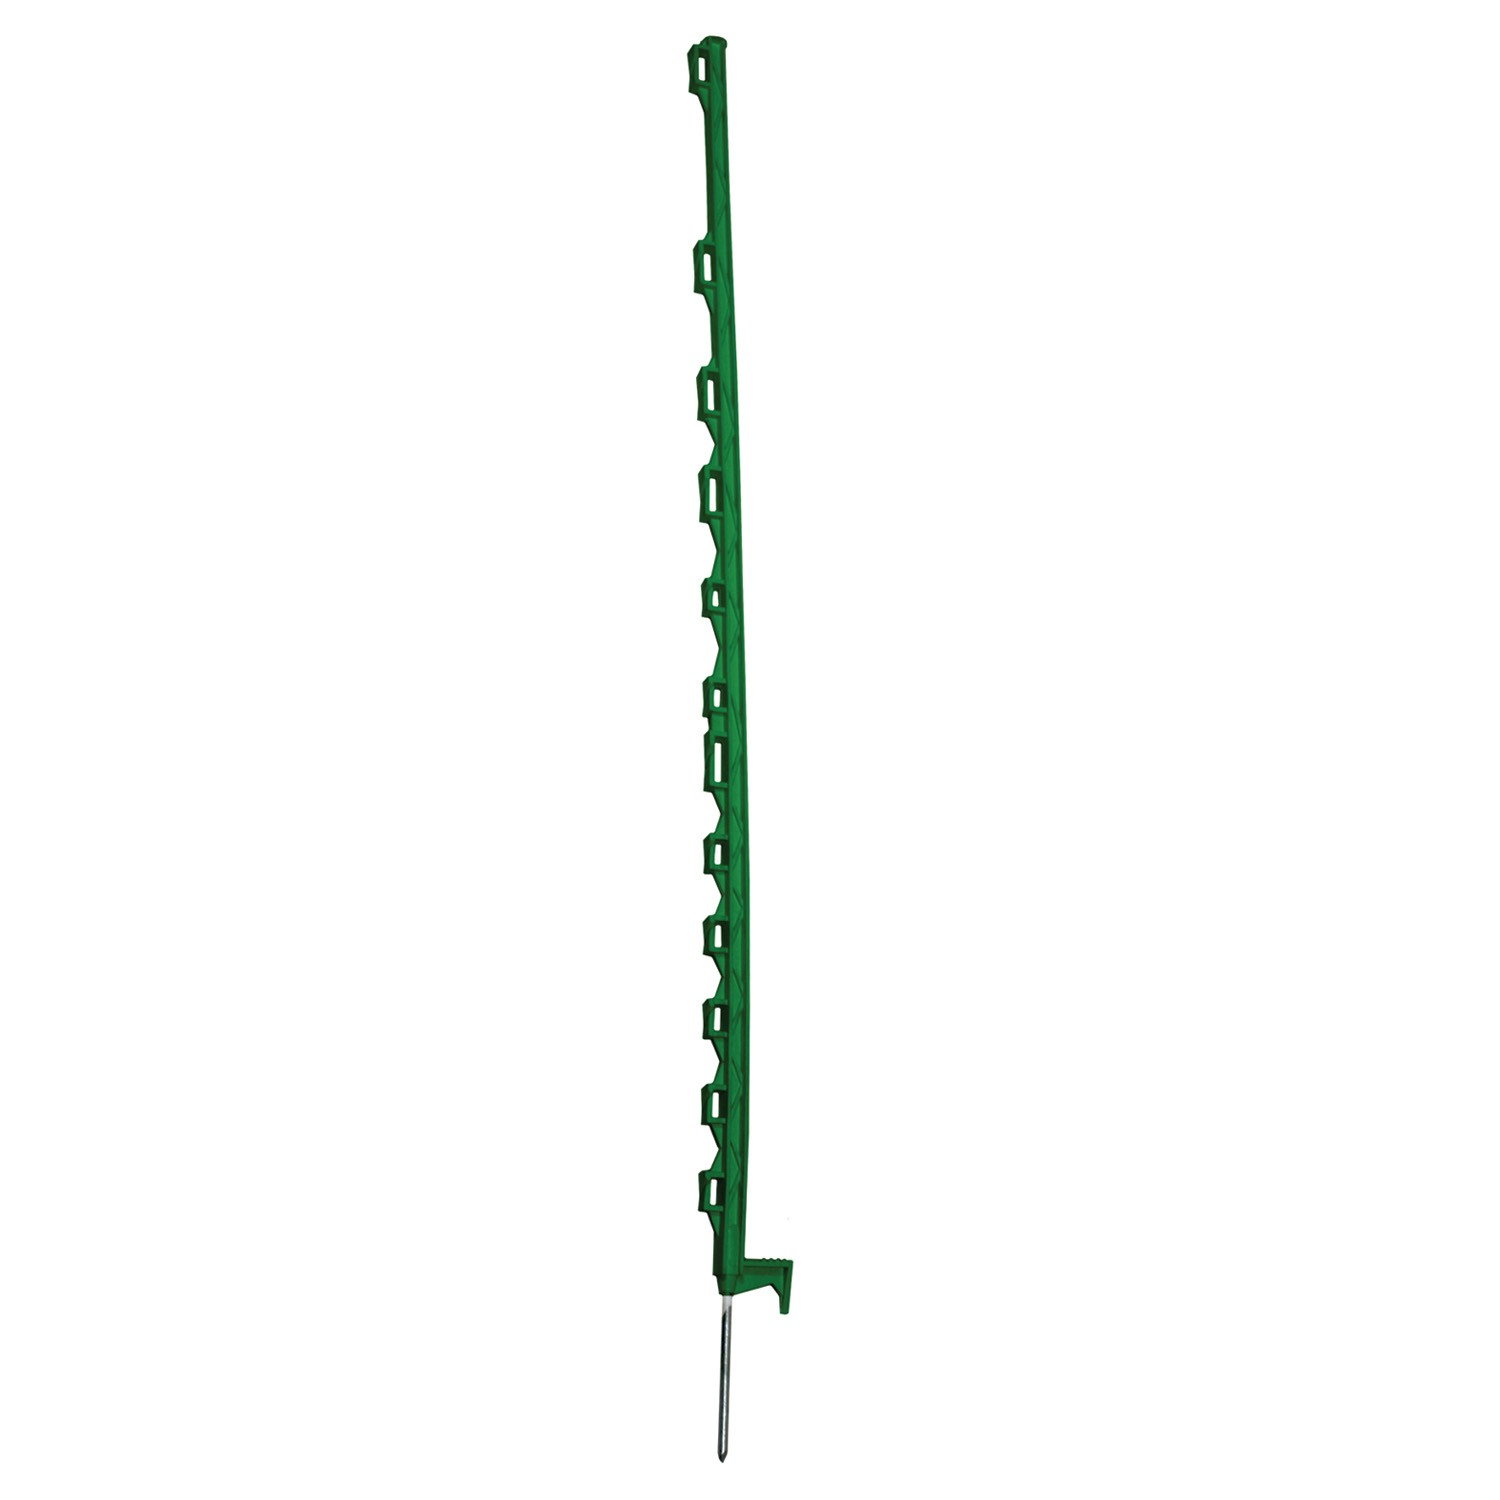 Rutland Green Horse Poly Posts Pack of 20  - Thomas Irving's equestrian and accessories store  Rutland Green Horse Poly Posts Pack of 20